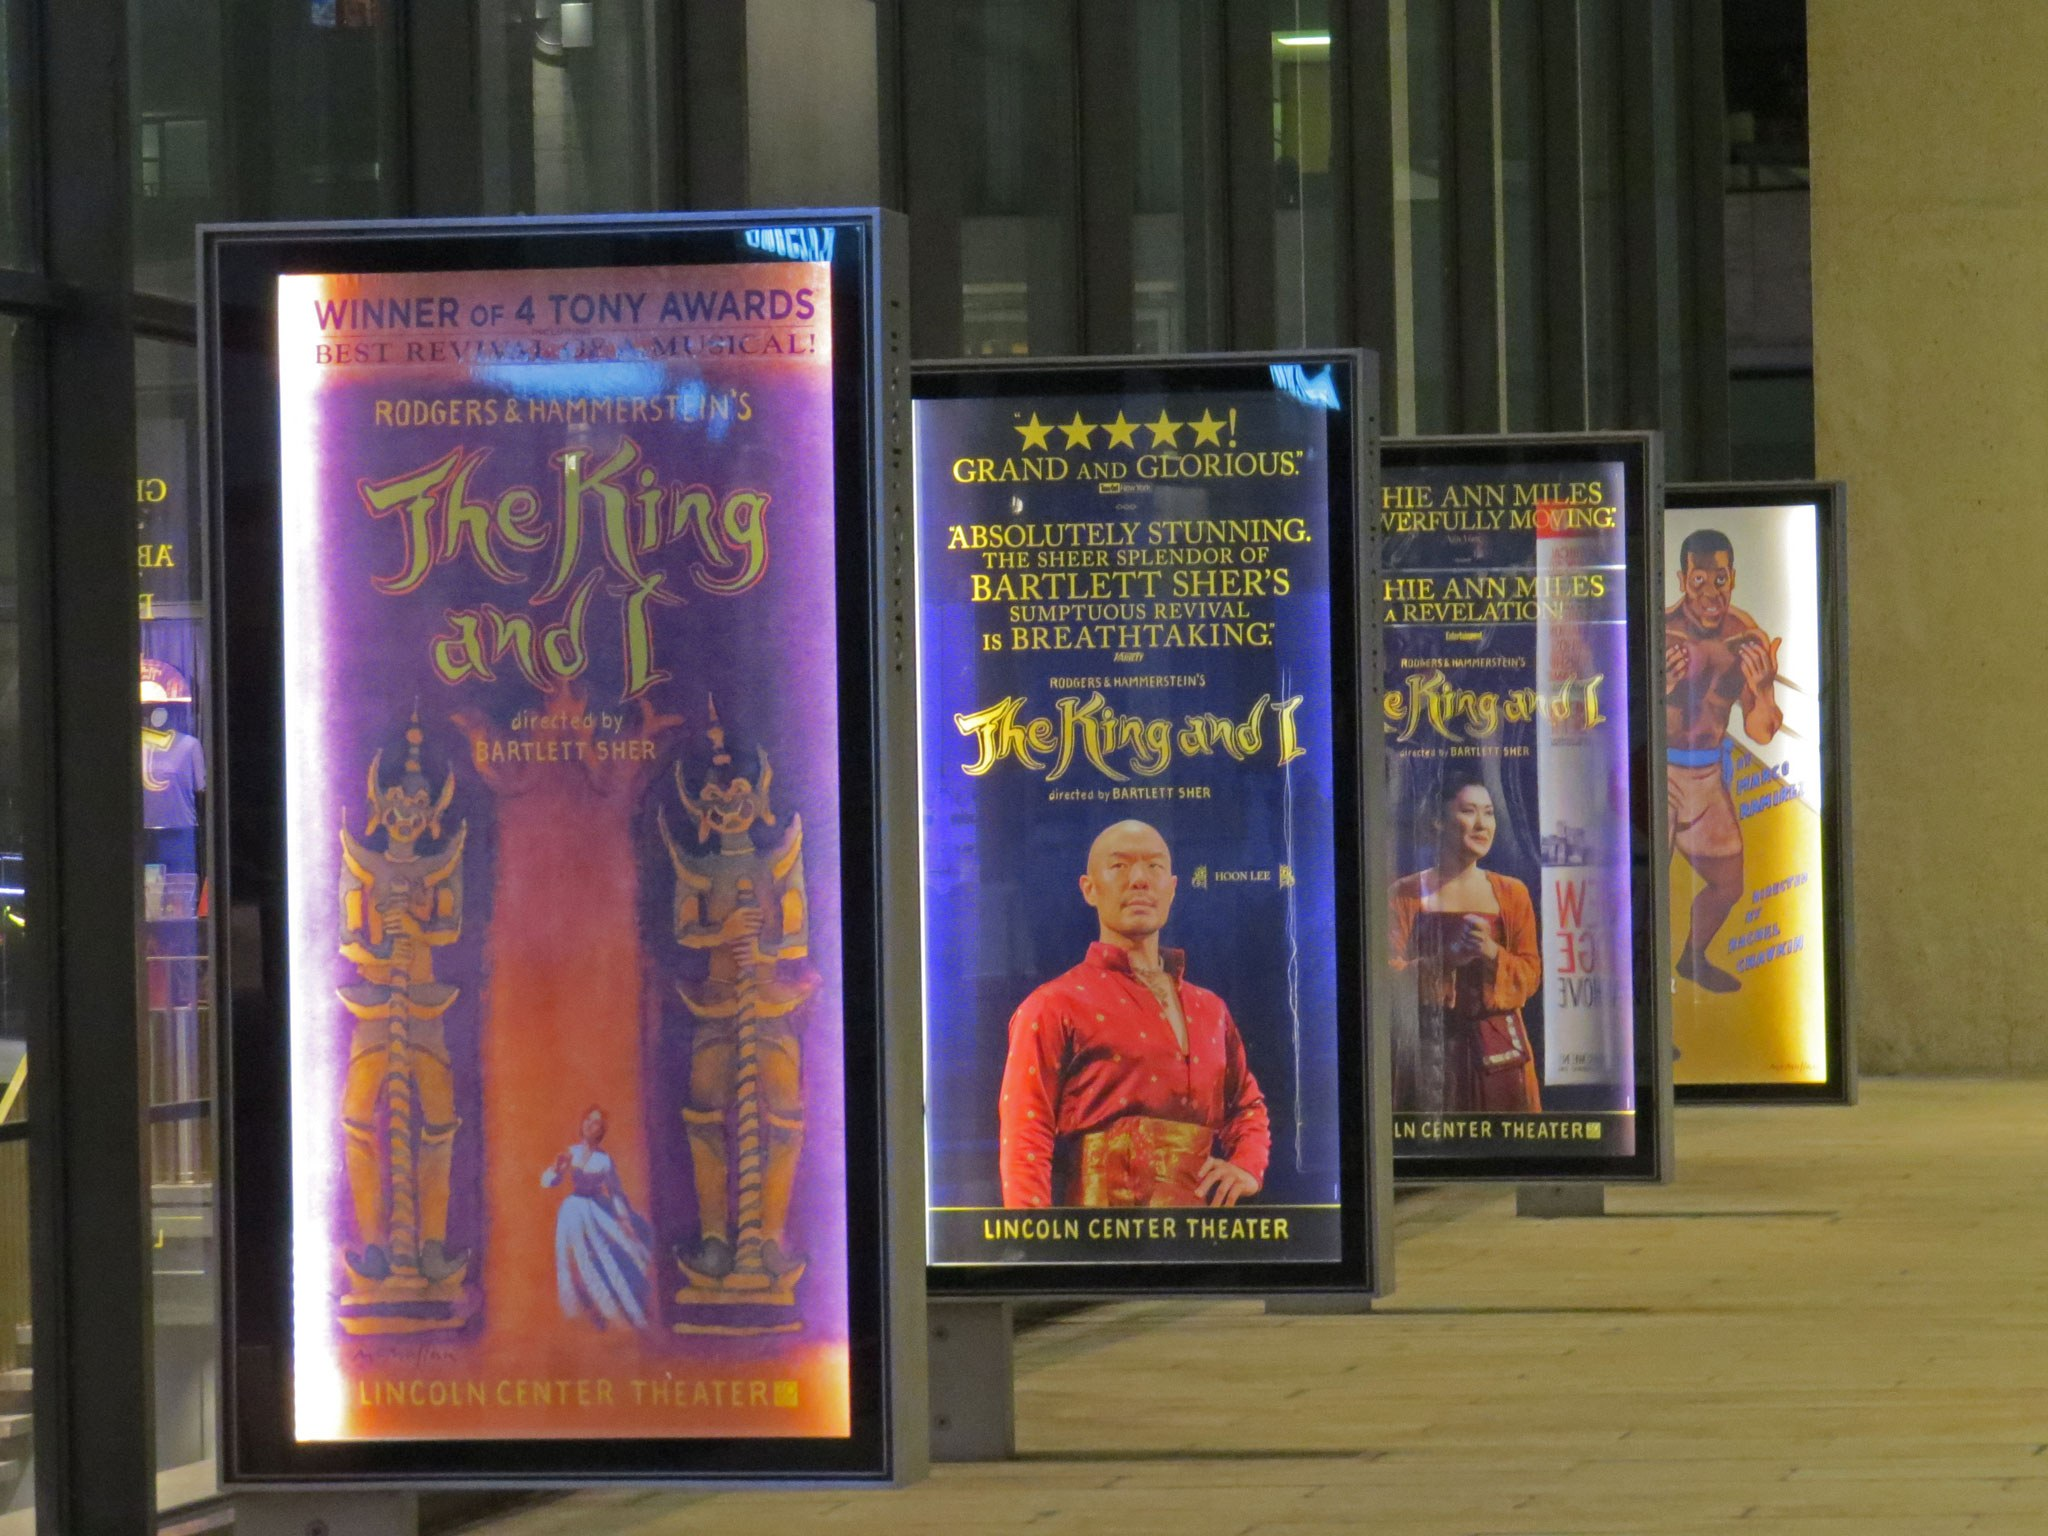 The King and I Marquee